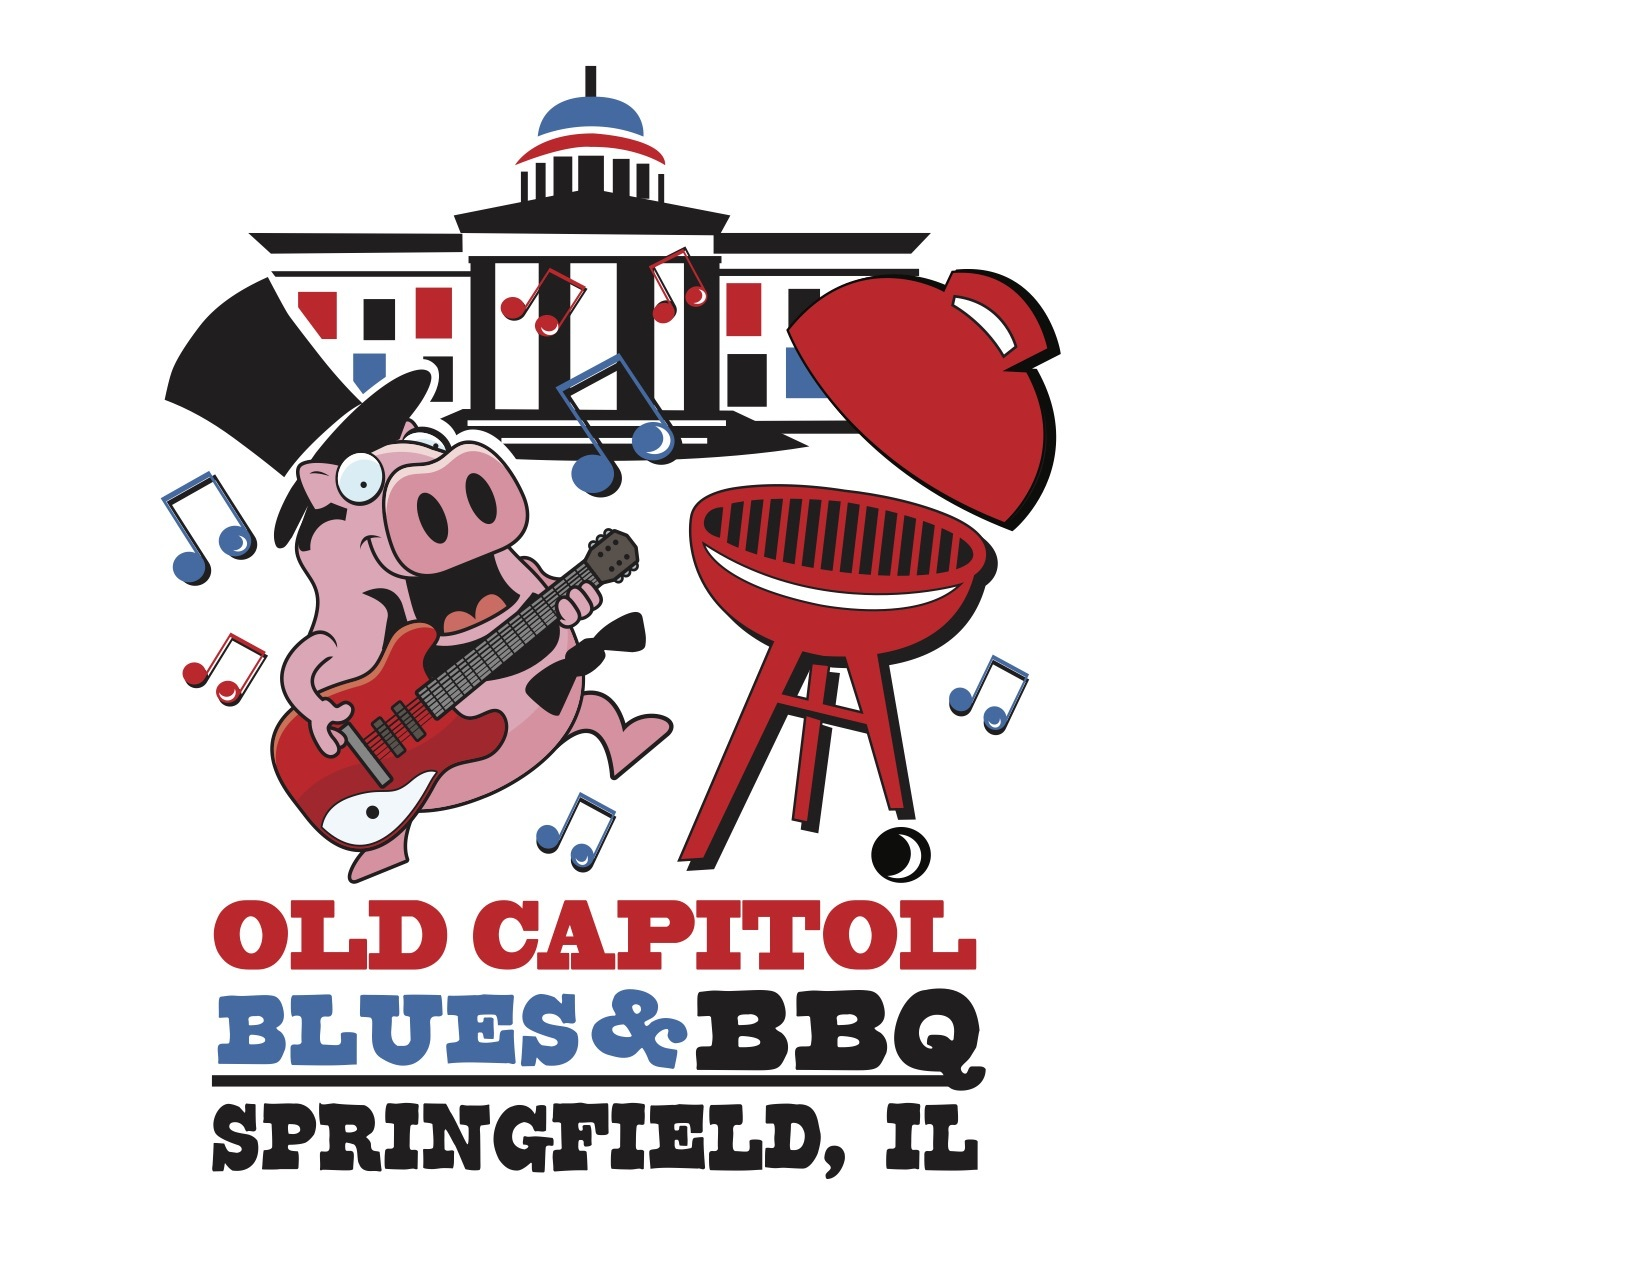 BHTM headed to Springfield, IL for Capitol Blues & BBQ!